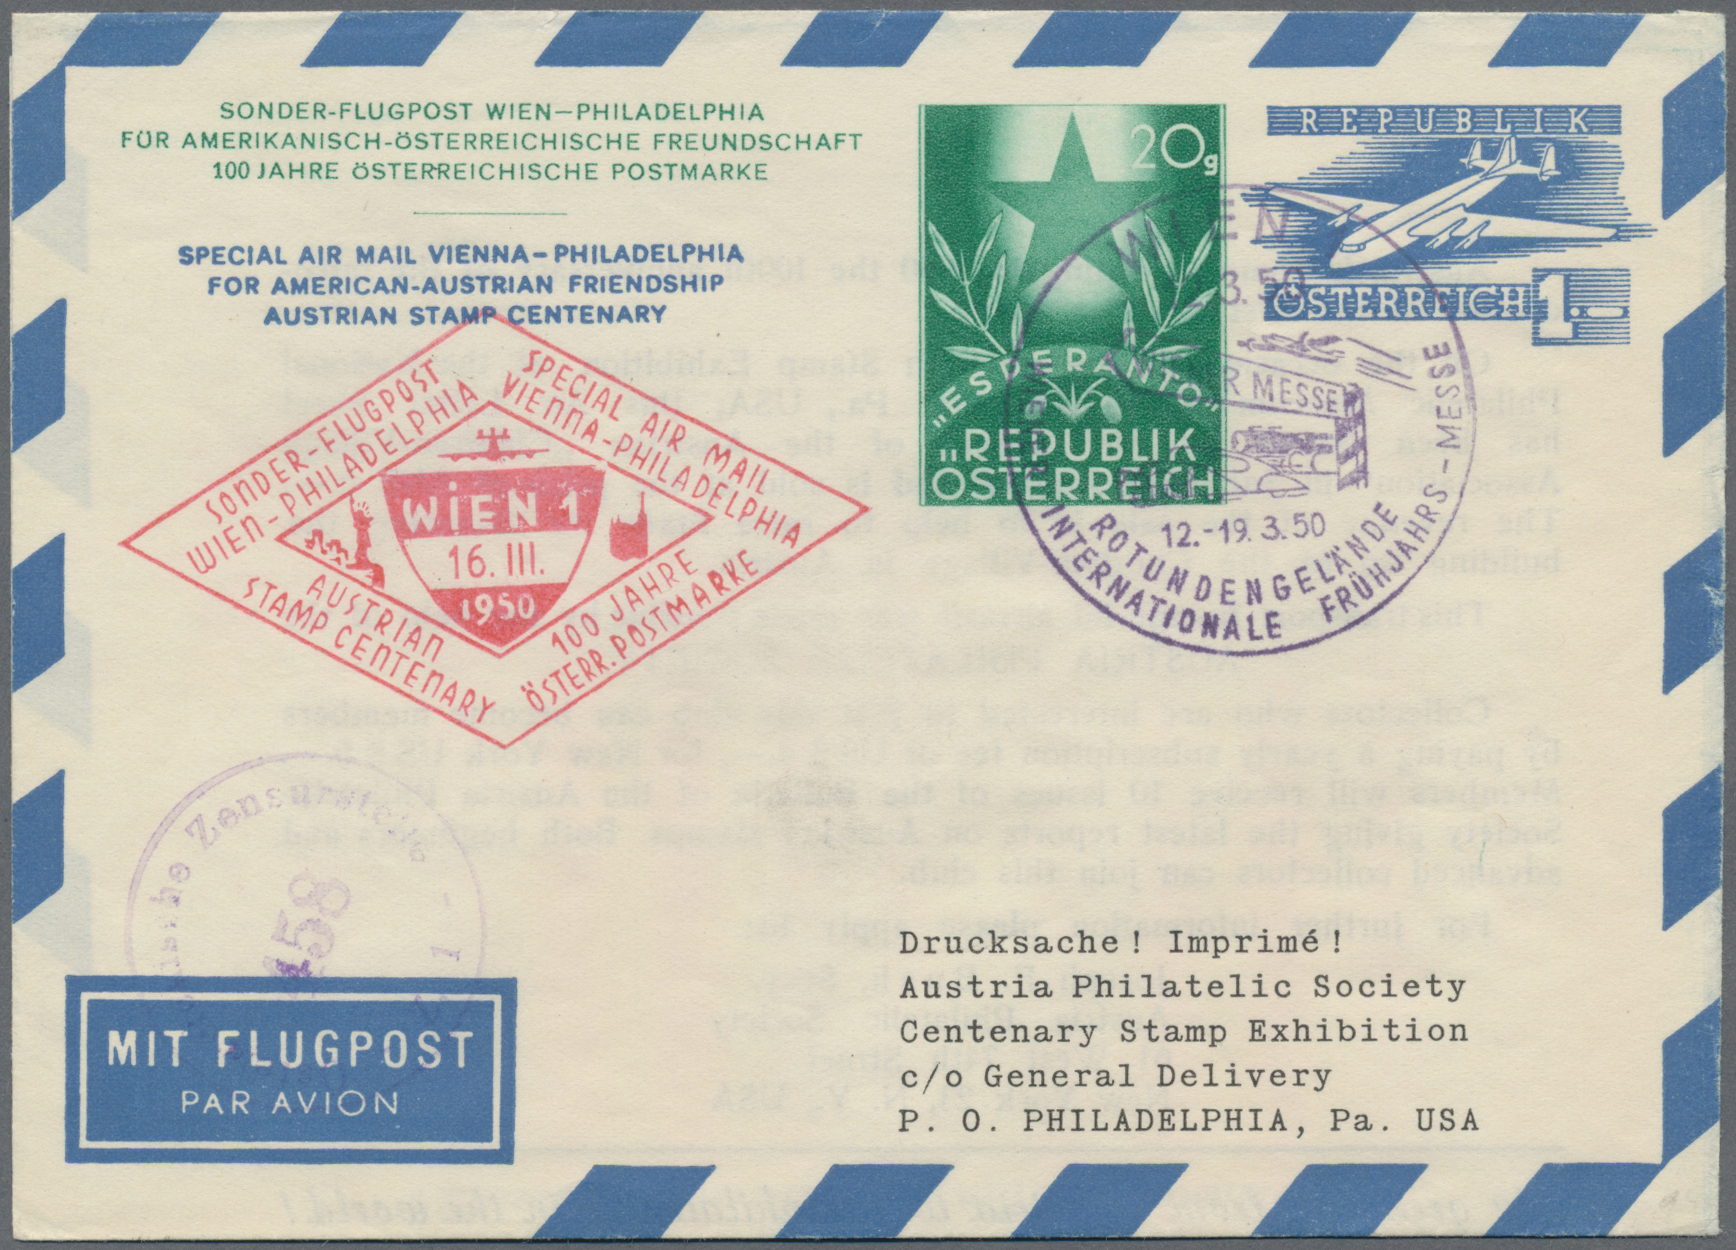 Lot 26105 - nachlässe  -  Auktionshaus Christoph Gärtner GmbH & Co. KG Sale #46 Gollcetions Germany - including the suplement